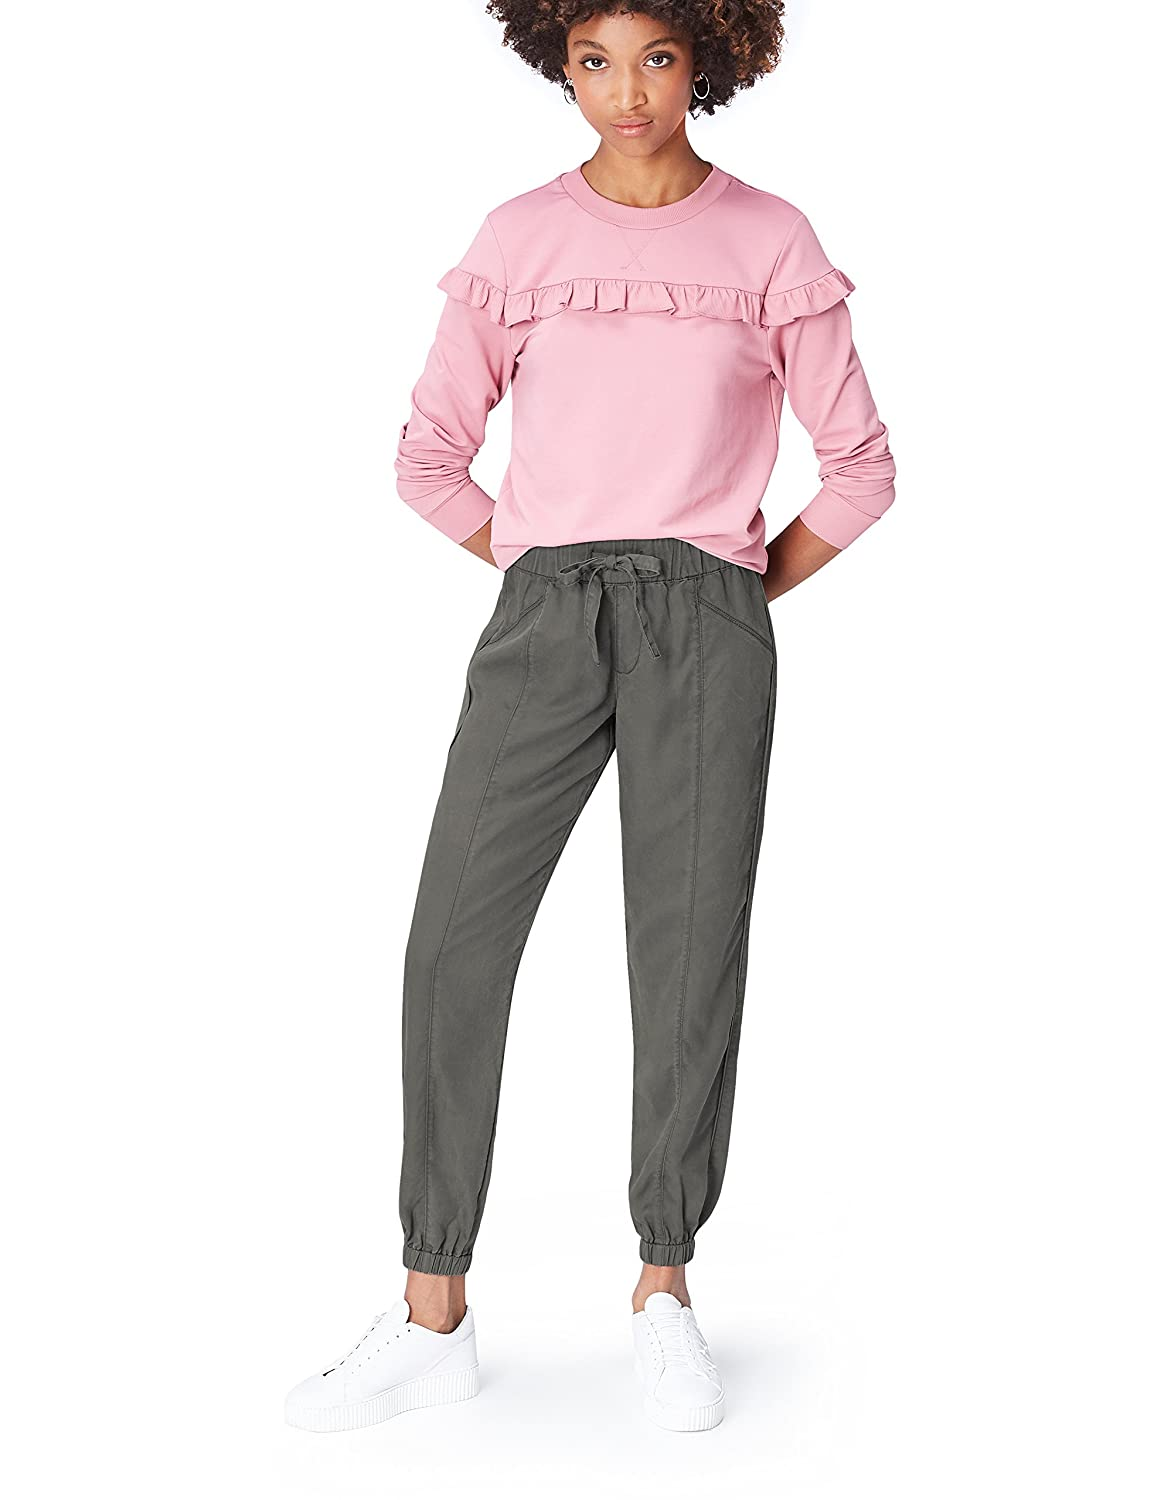 find. Utility_DC3086P - Pantalones Mujer